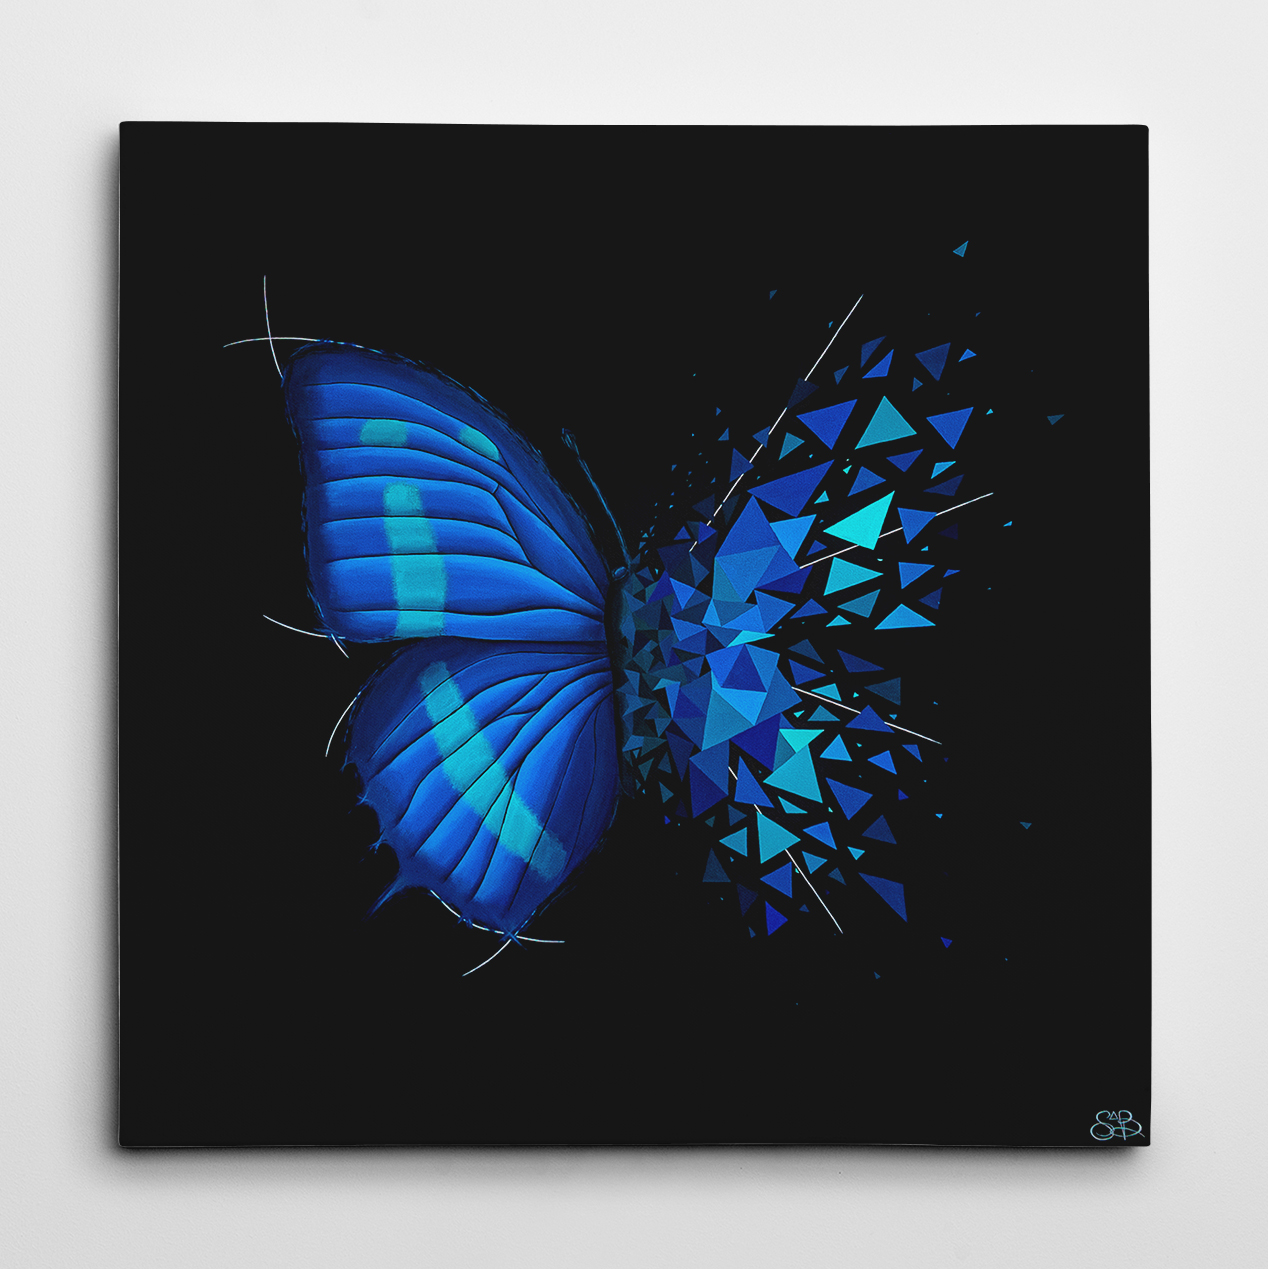 Butterfly Effect Image